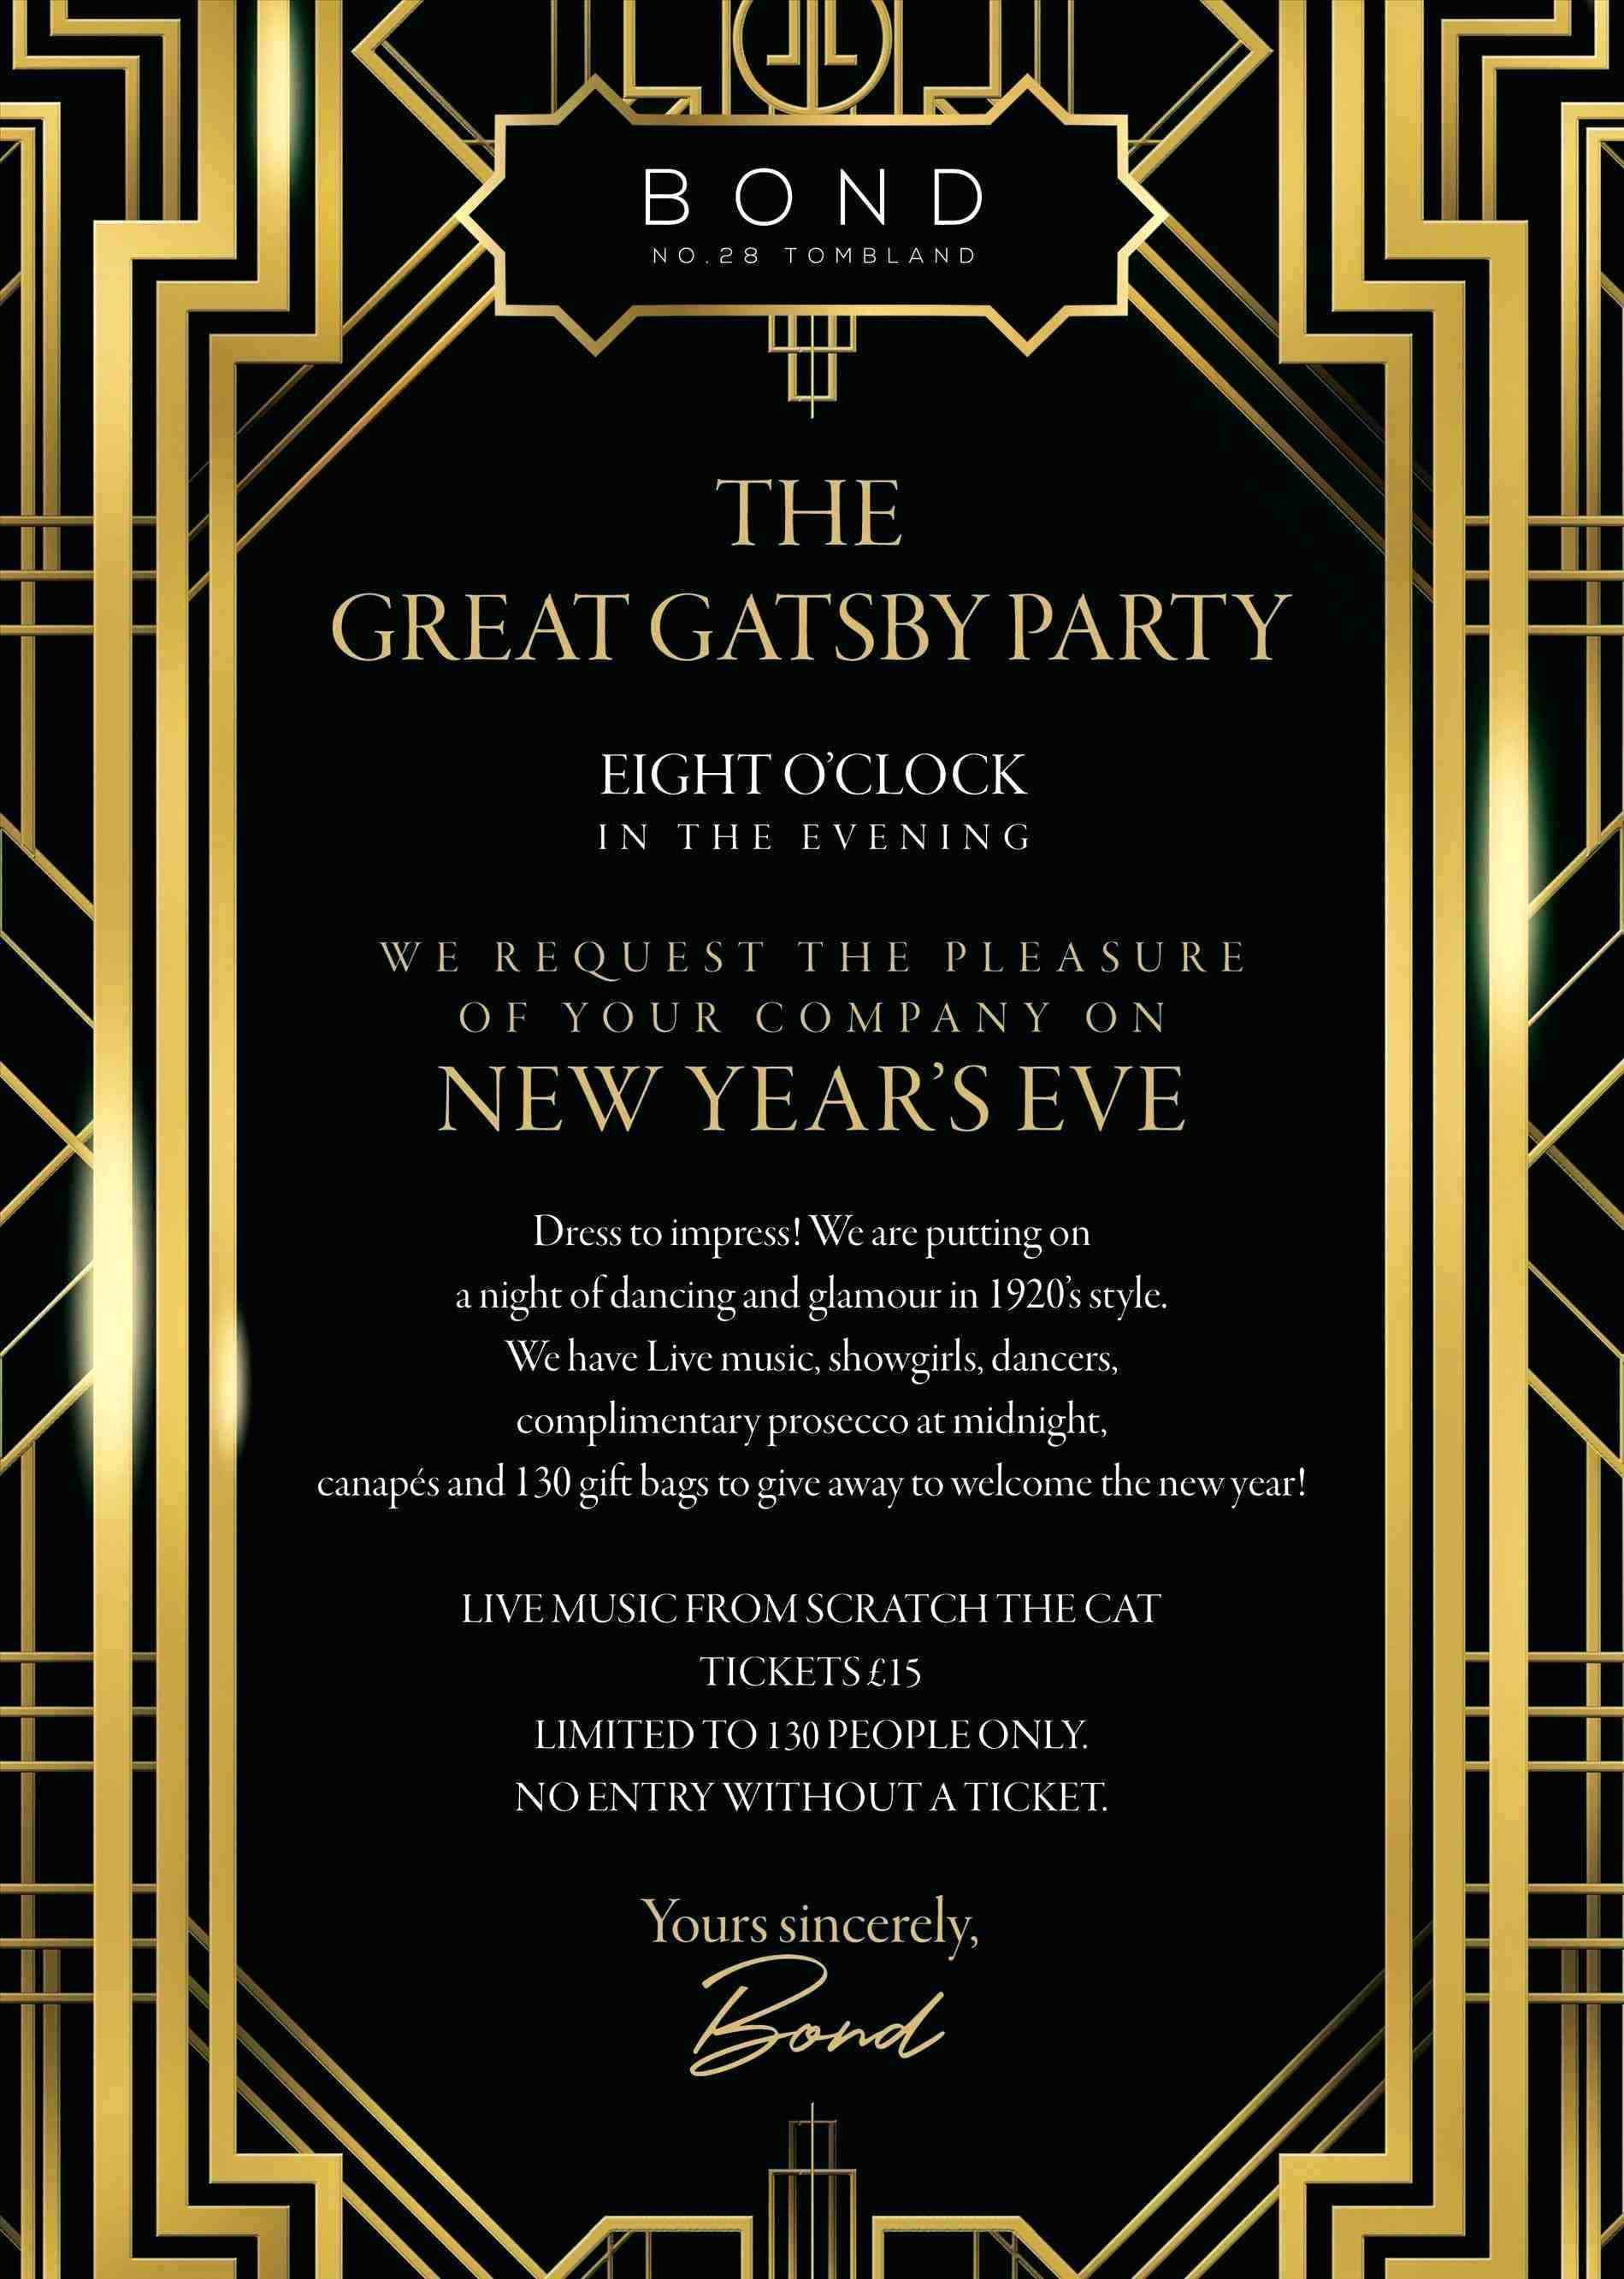 37 Blank Great Gatsby Party Invitation Template Free Now for Great Gatsby Party Invitation Template Free